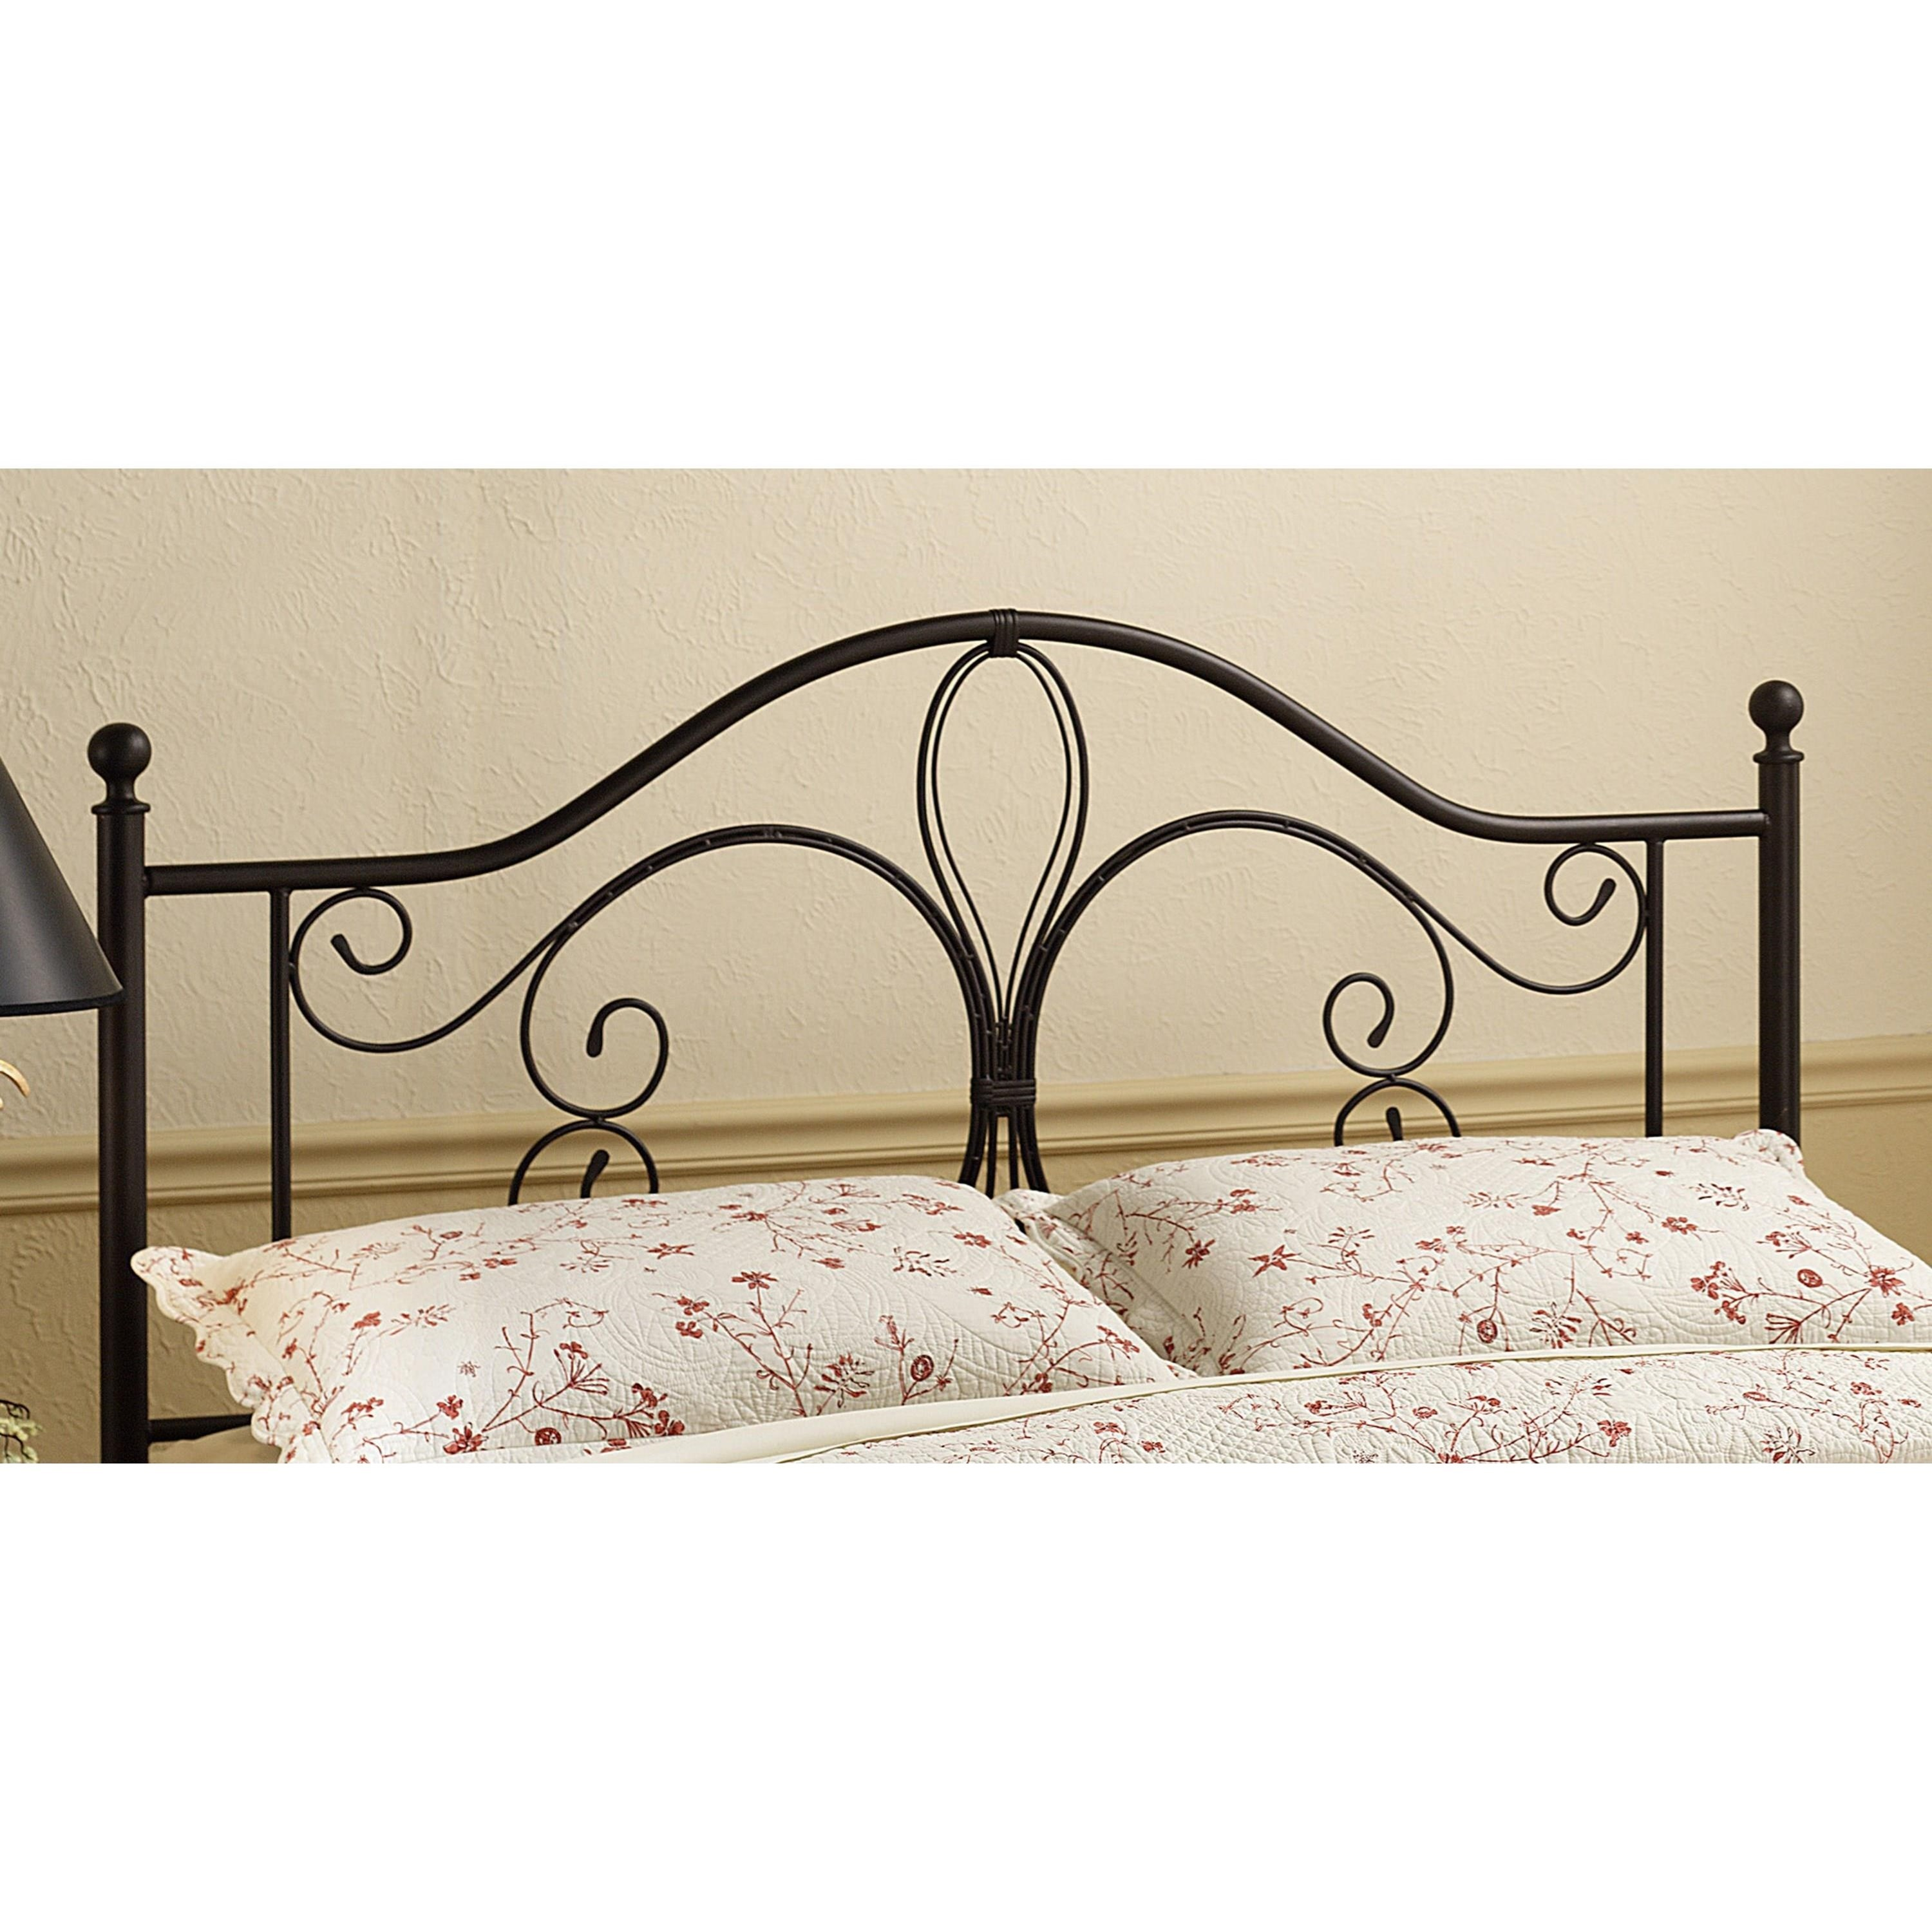 Metal Beds Full/Queen Milwaukee Headboard by Hillsdale at Esprit Decor Home Furnishings